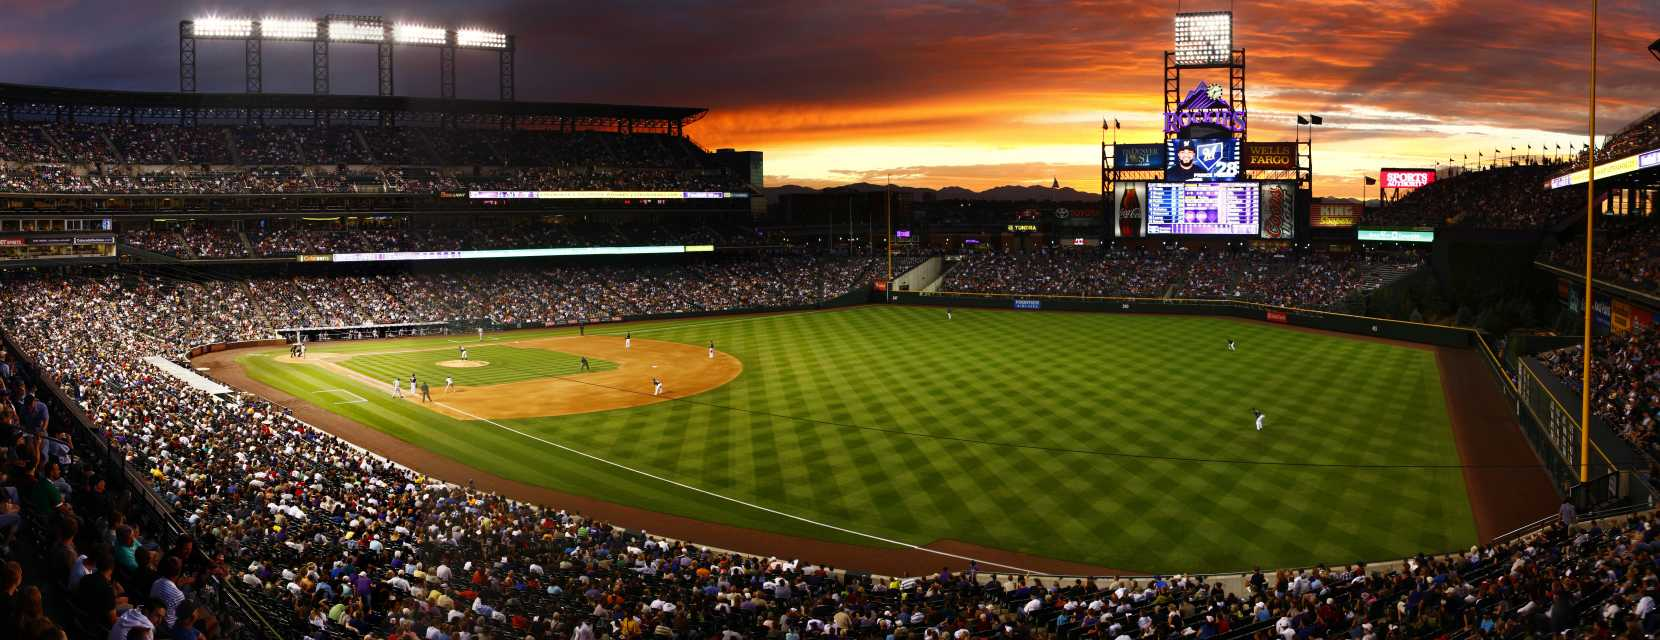 Coors Field at sunset in Denver